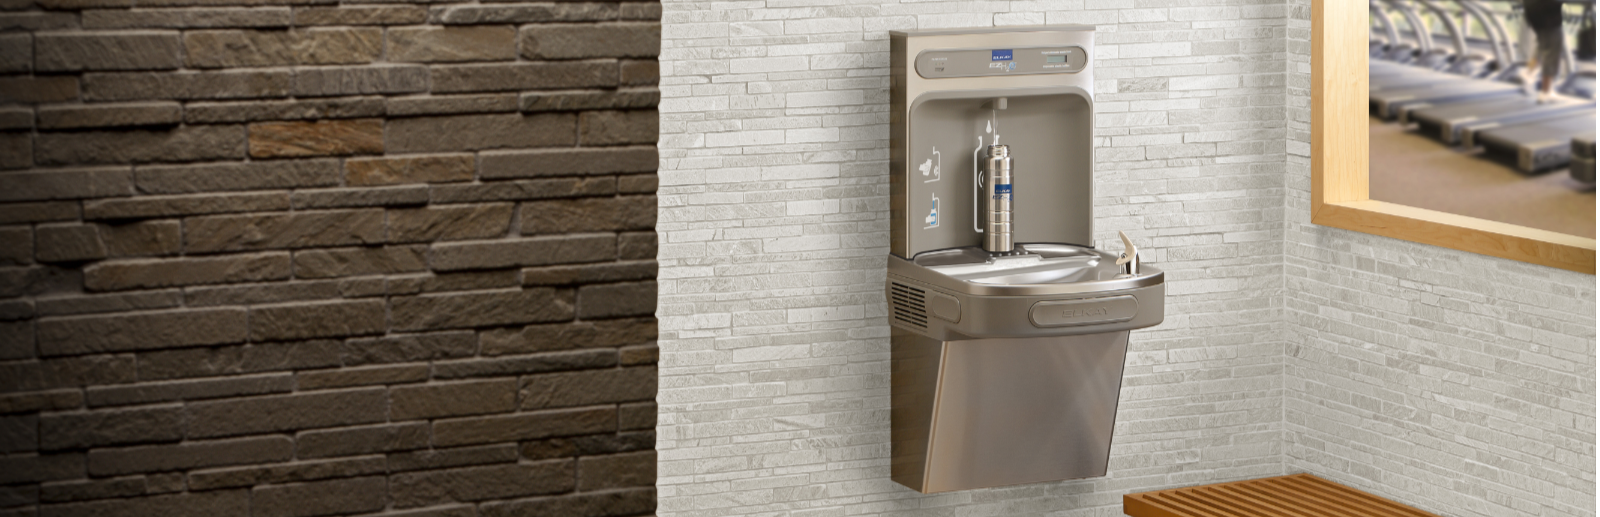 B40 Drinking Fountain-Gym-204